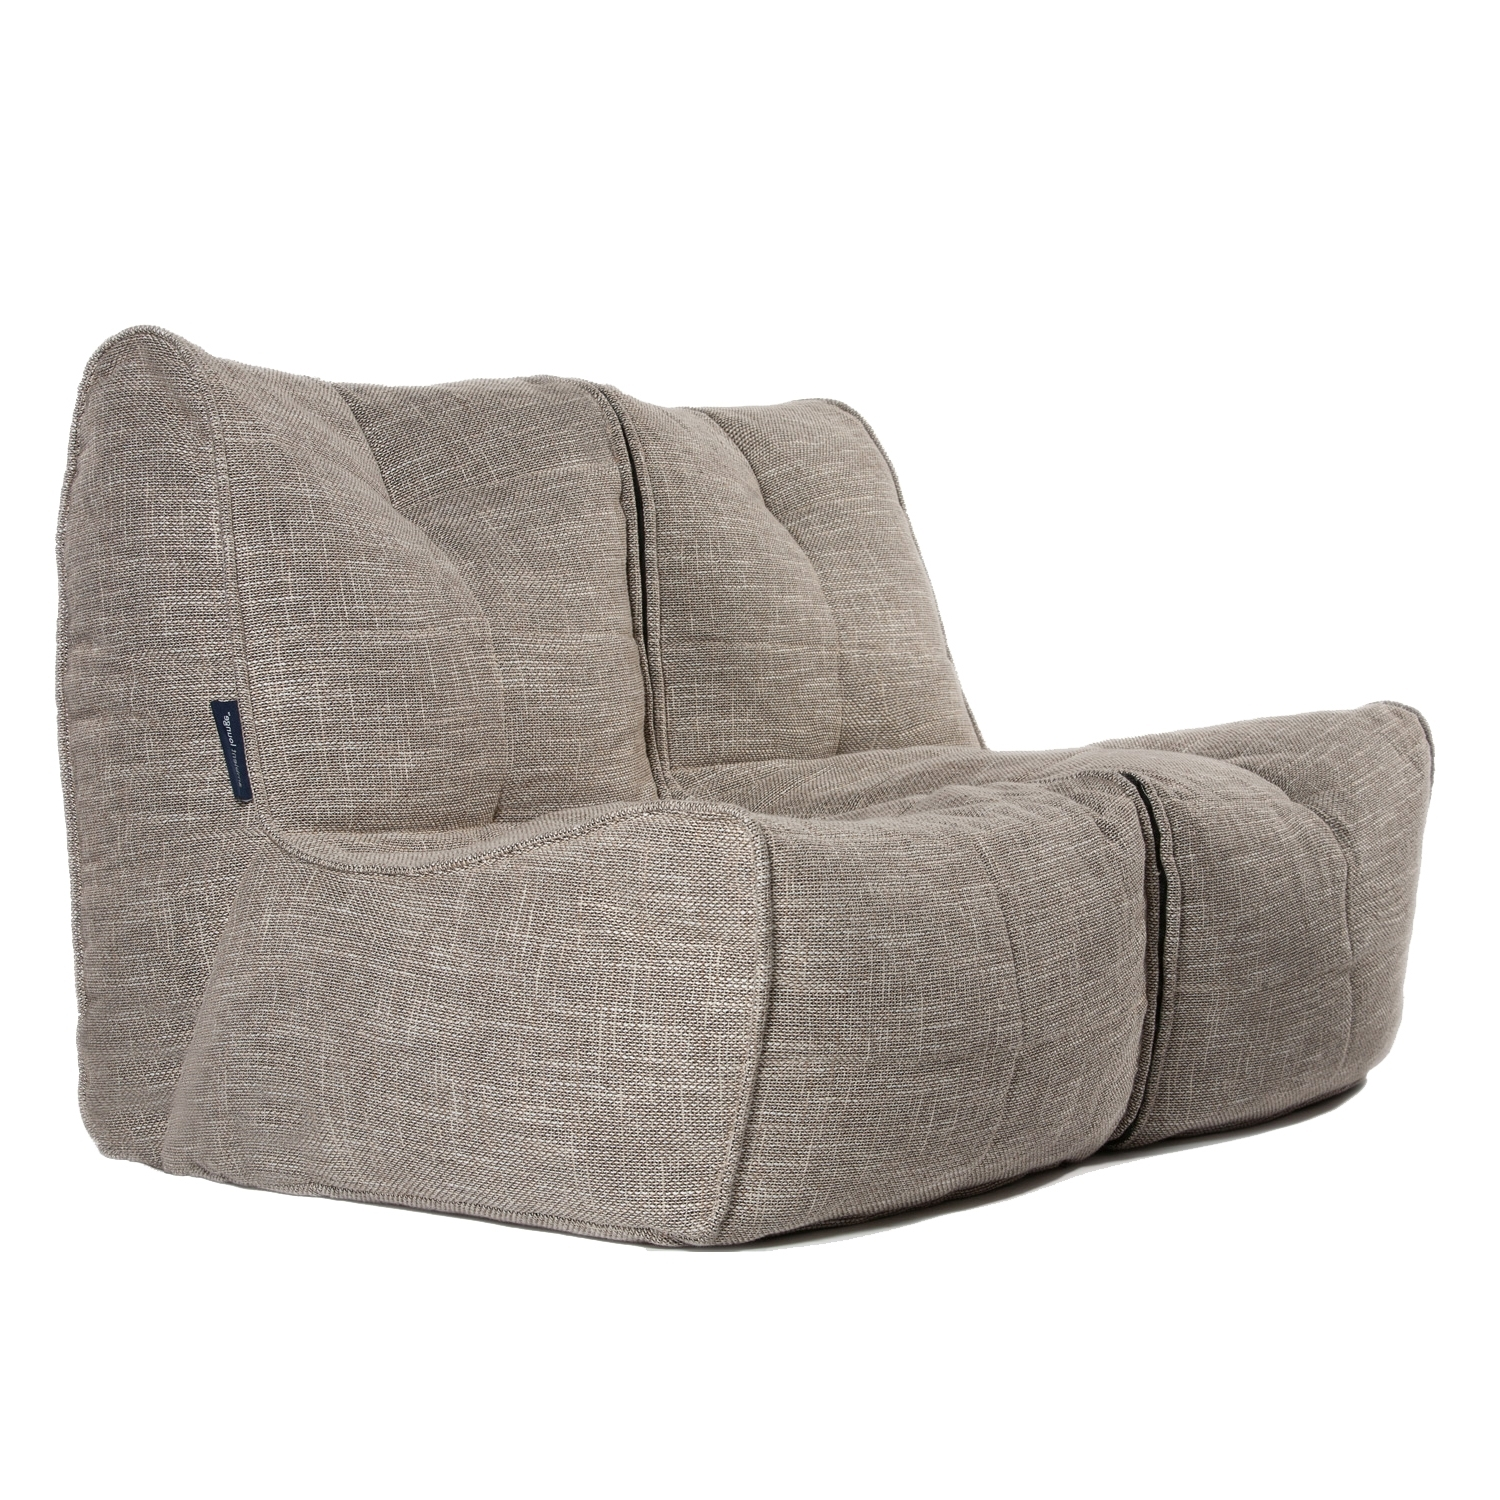 Cream Fabric Throughout Most Popular Bean Bag Sofas (View 8 of 20)